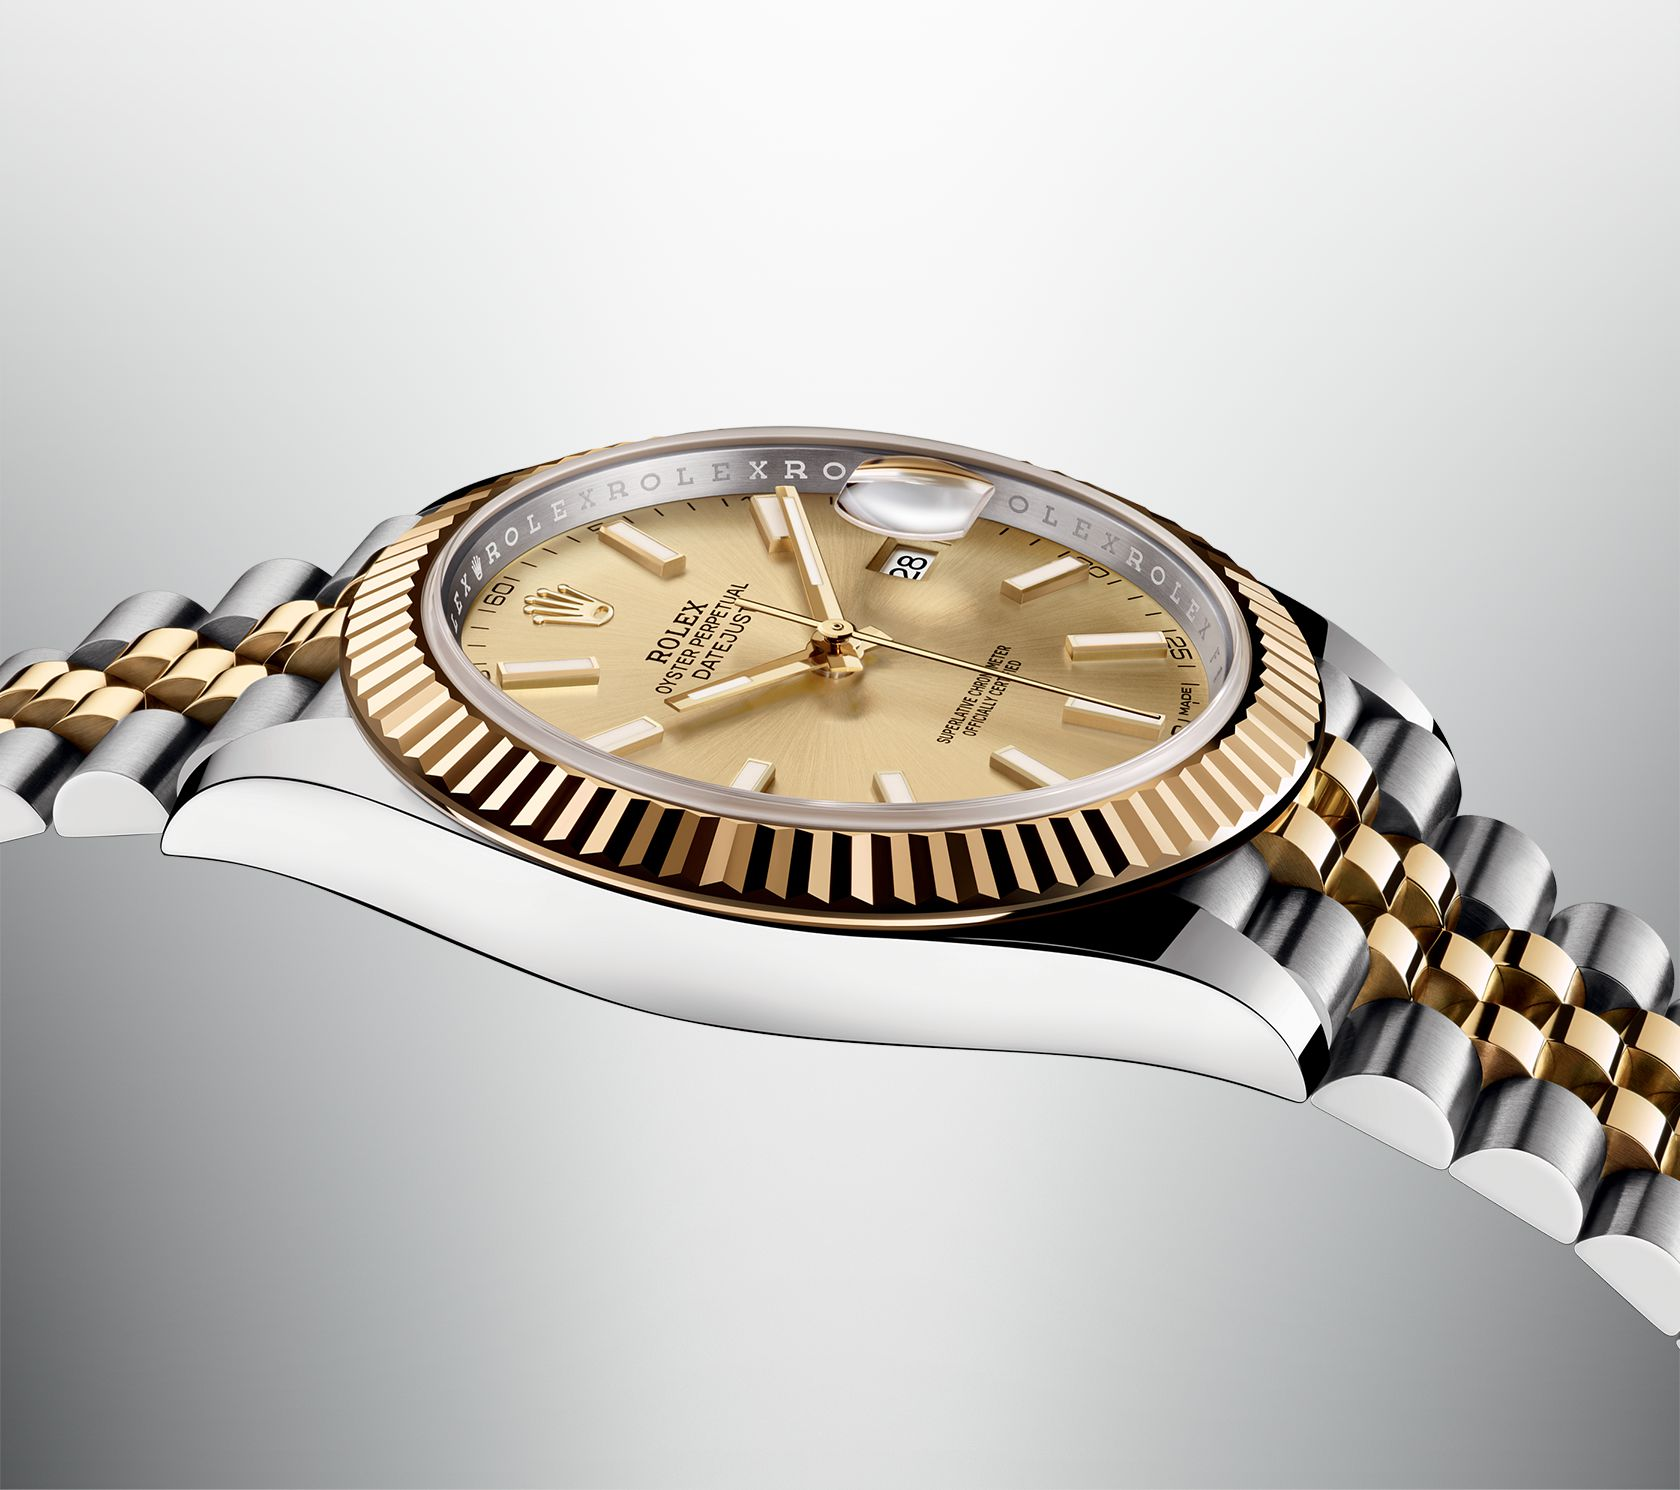 new-rolex-datejust-41-watch.jpg